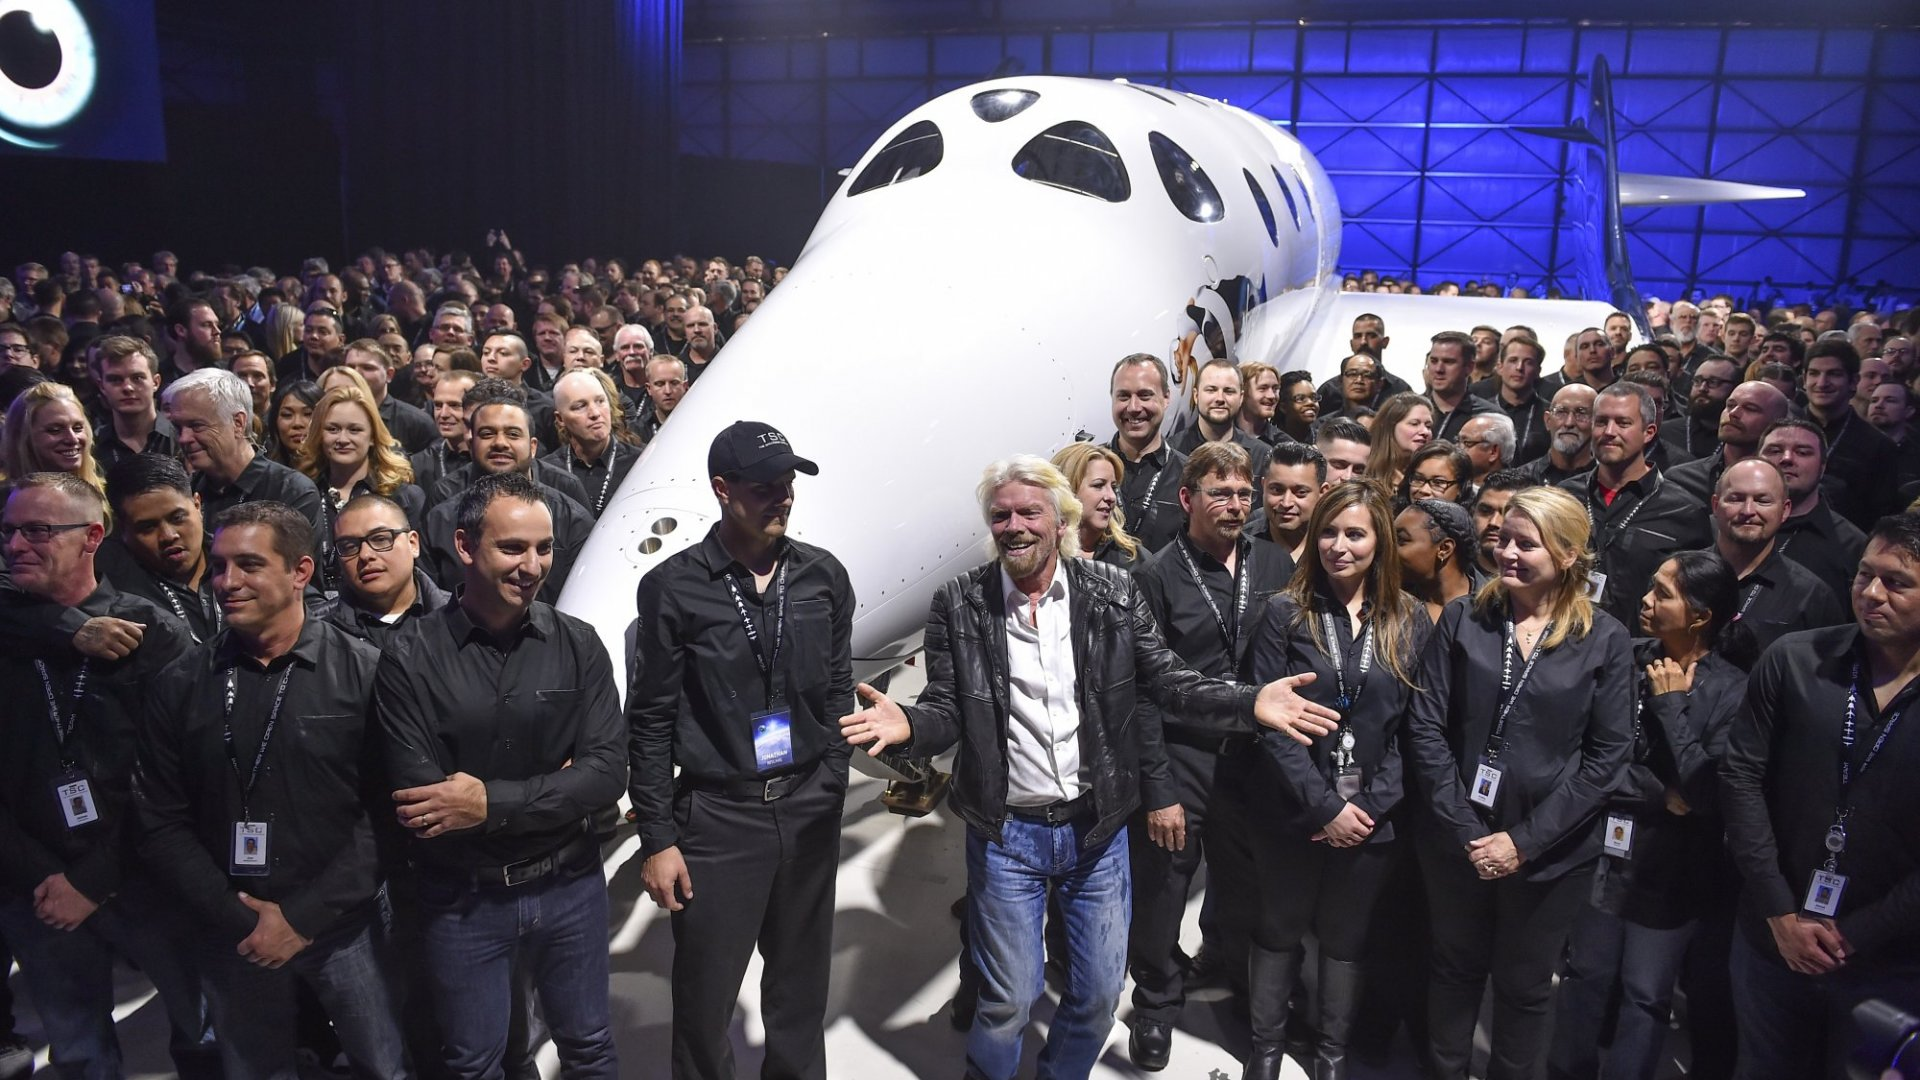 The Way Richard Branson Celebrated Virgin Galactic's First Space Flight Reveals His Secret to Motivating Teams